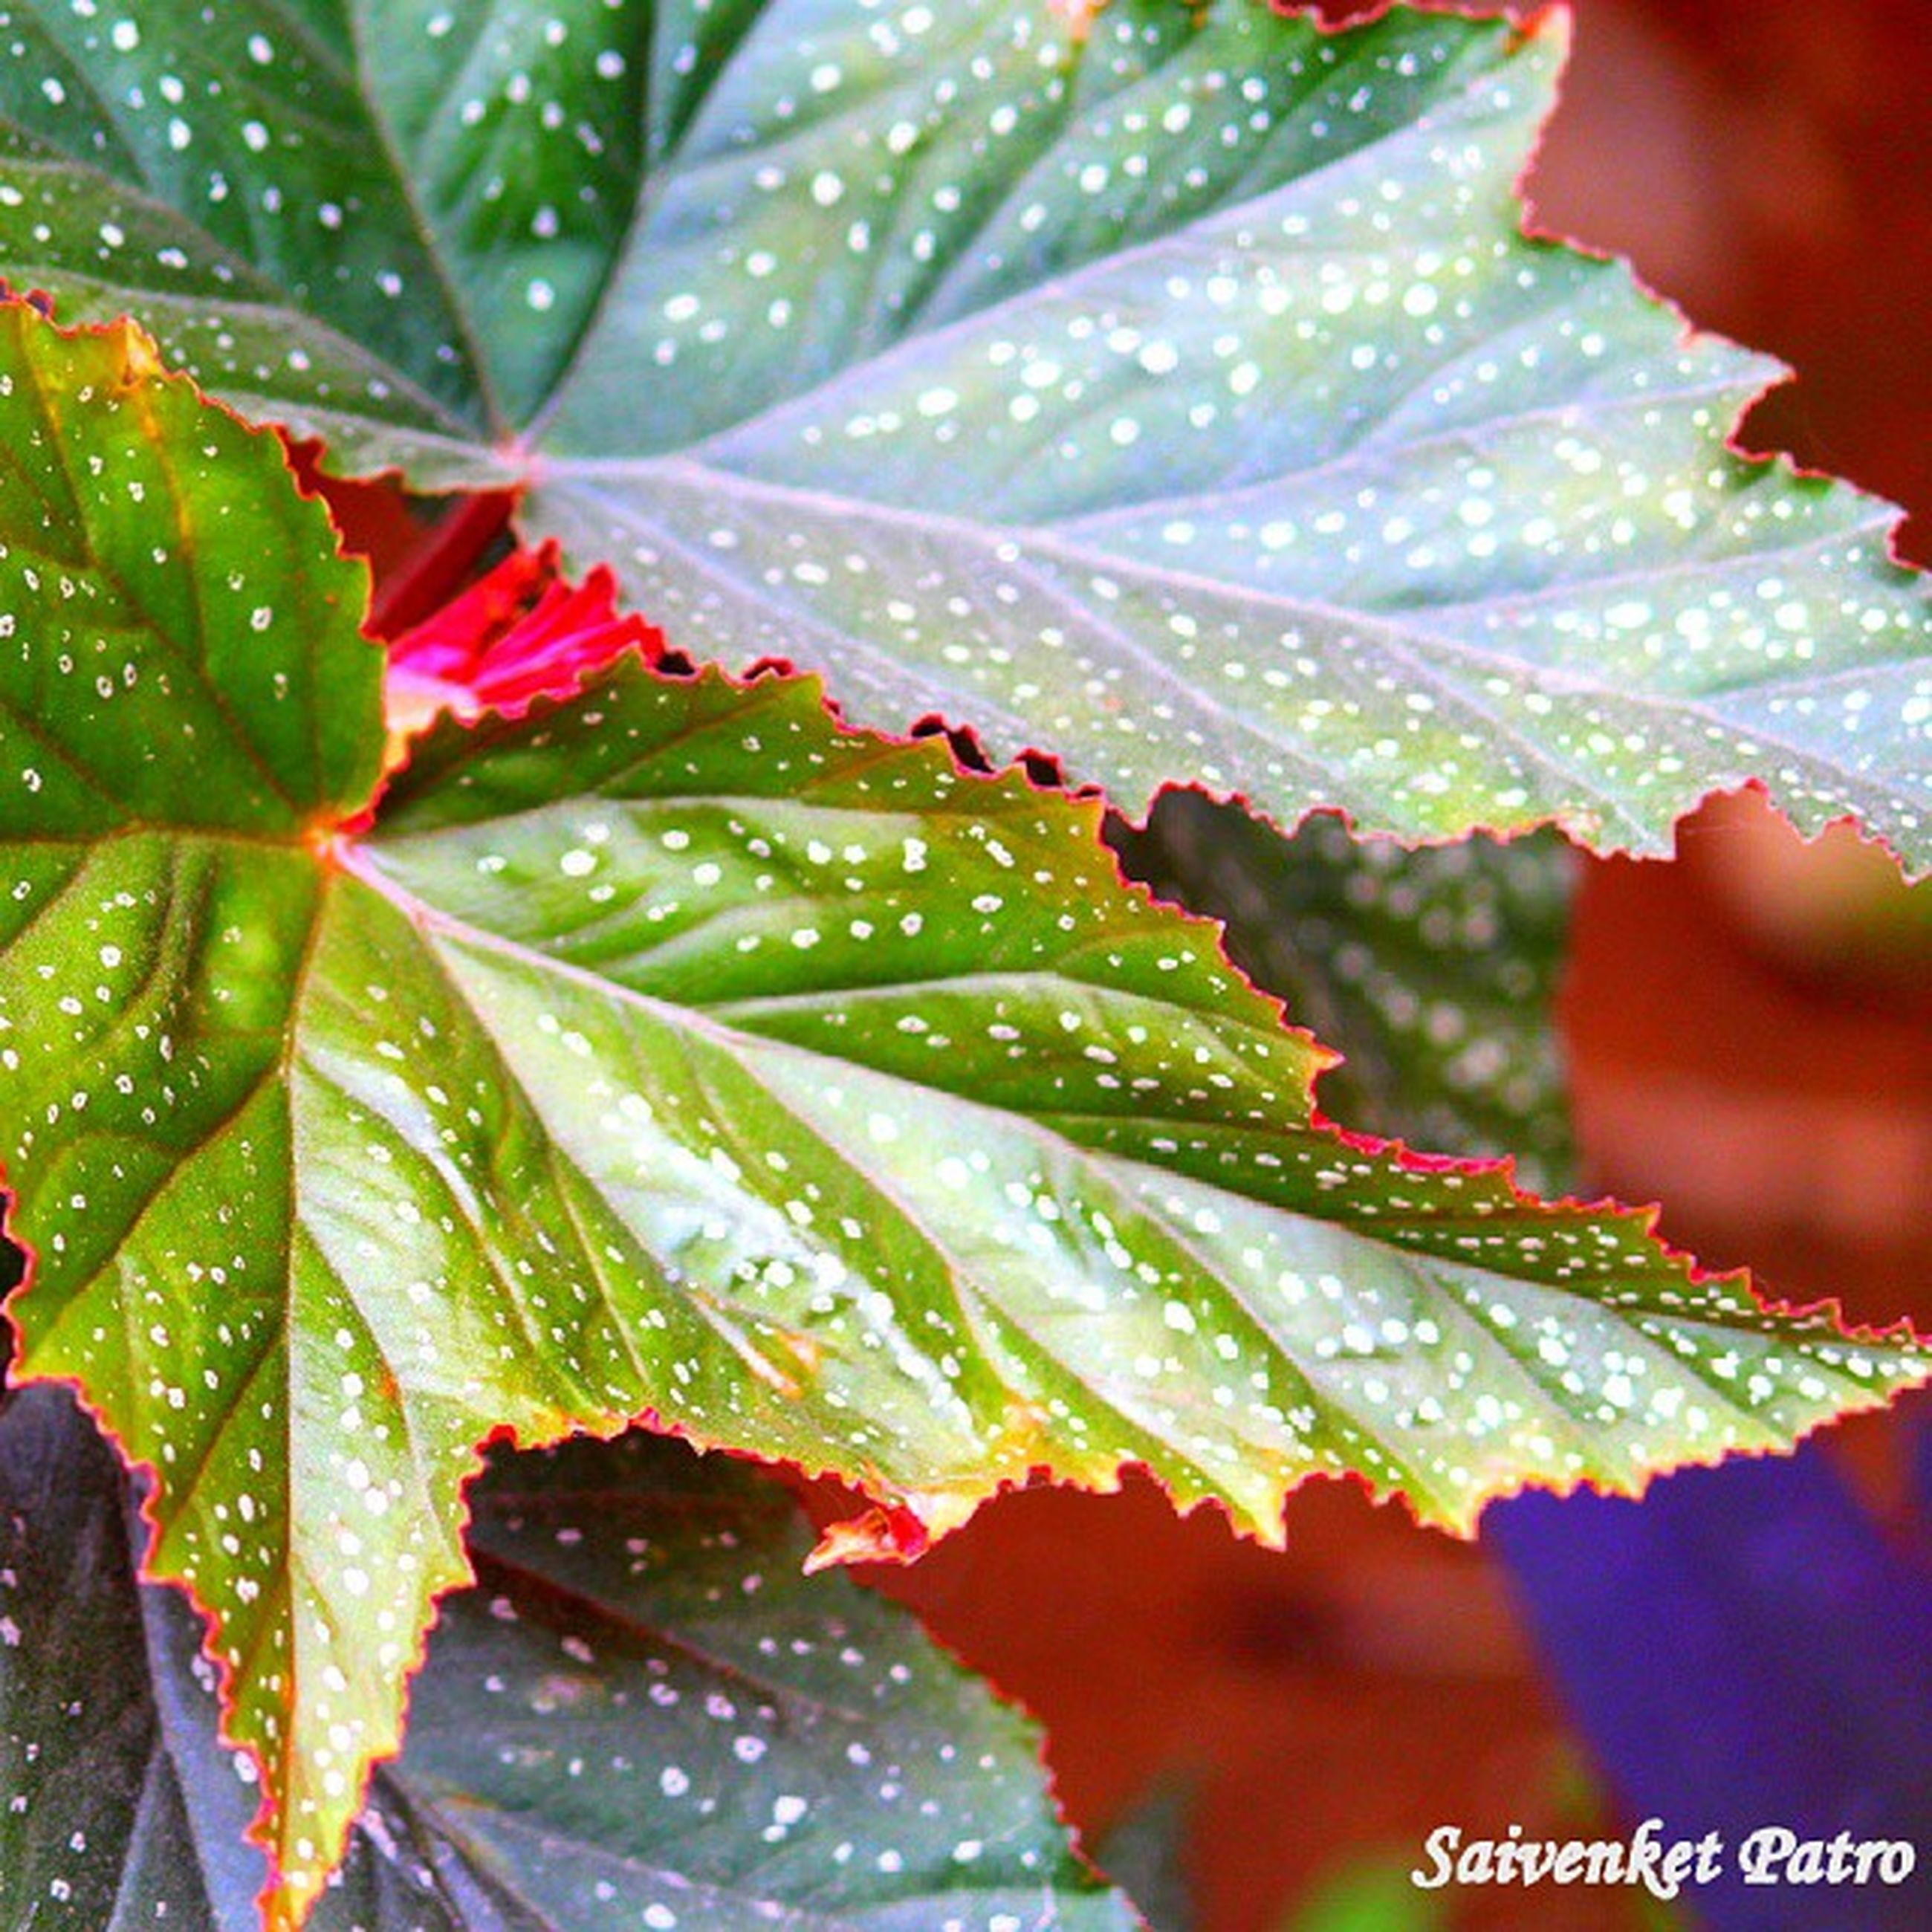 leaf, drop, water, wet, growth, freshness, close-up, plant, nature, beauty in nature, green color, leaves, leaf vein, dew, season, fragility, focus on foreground, weather, rain, raindrop